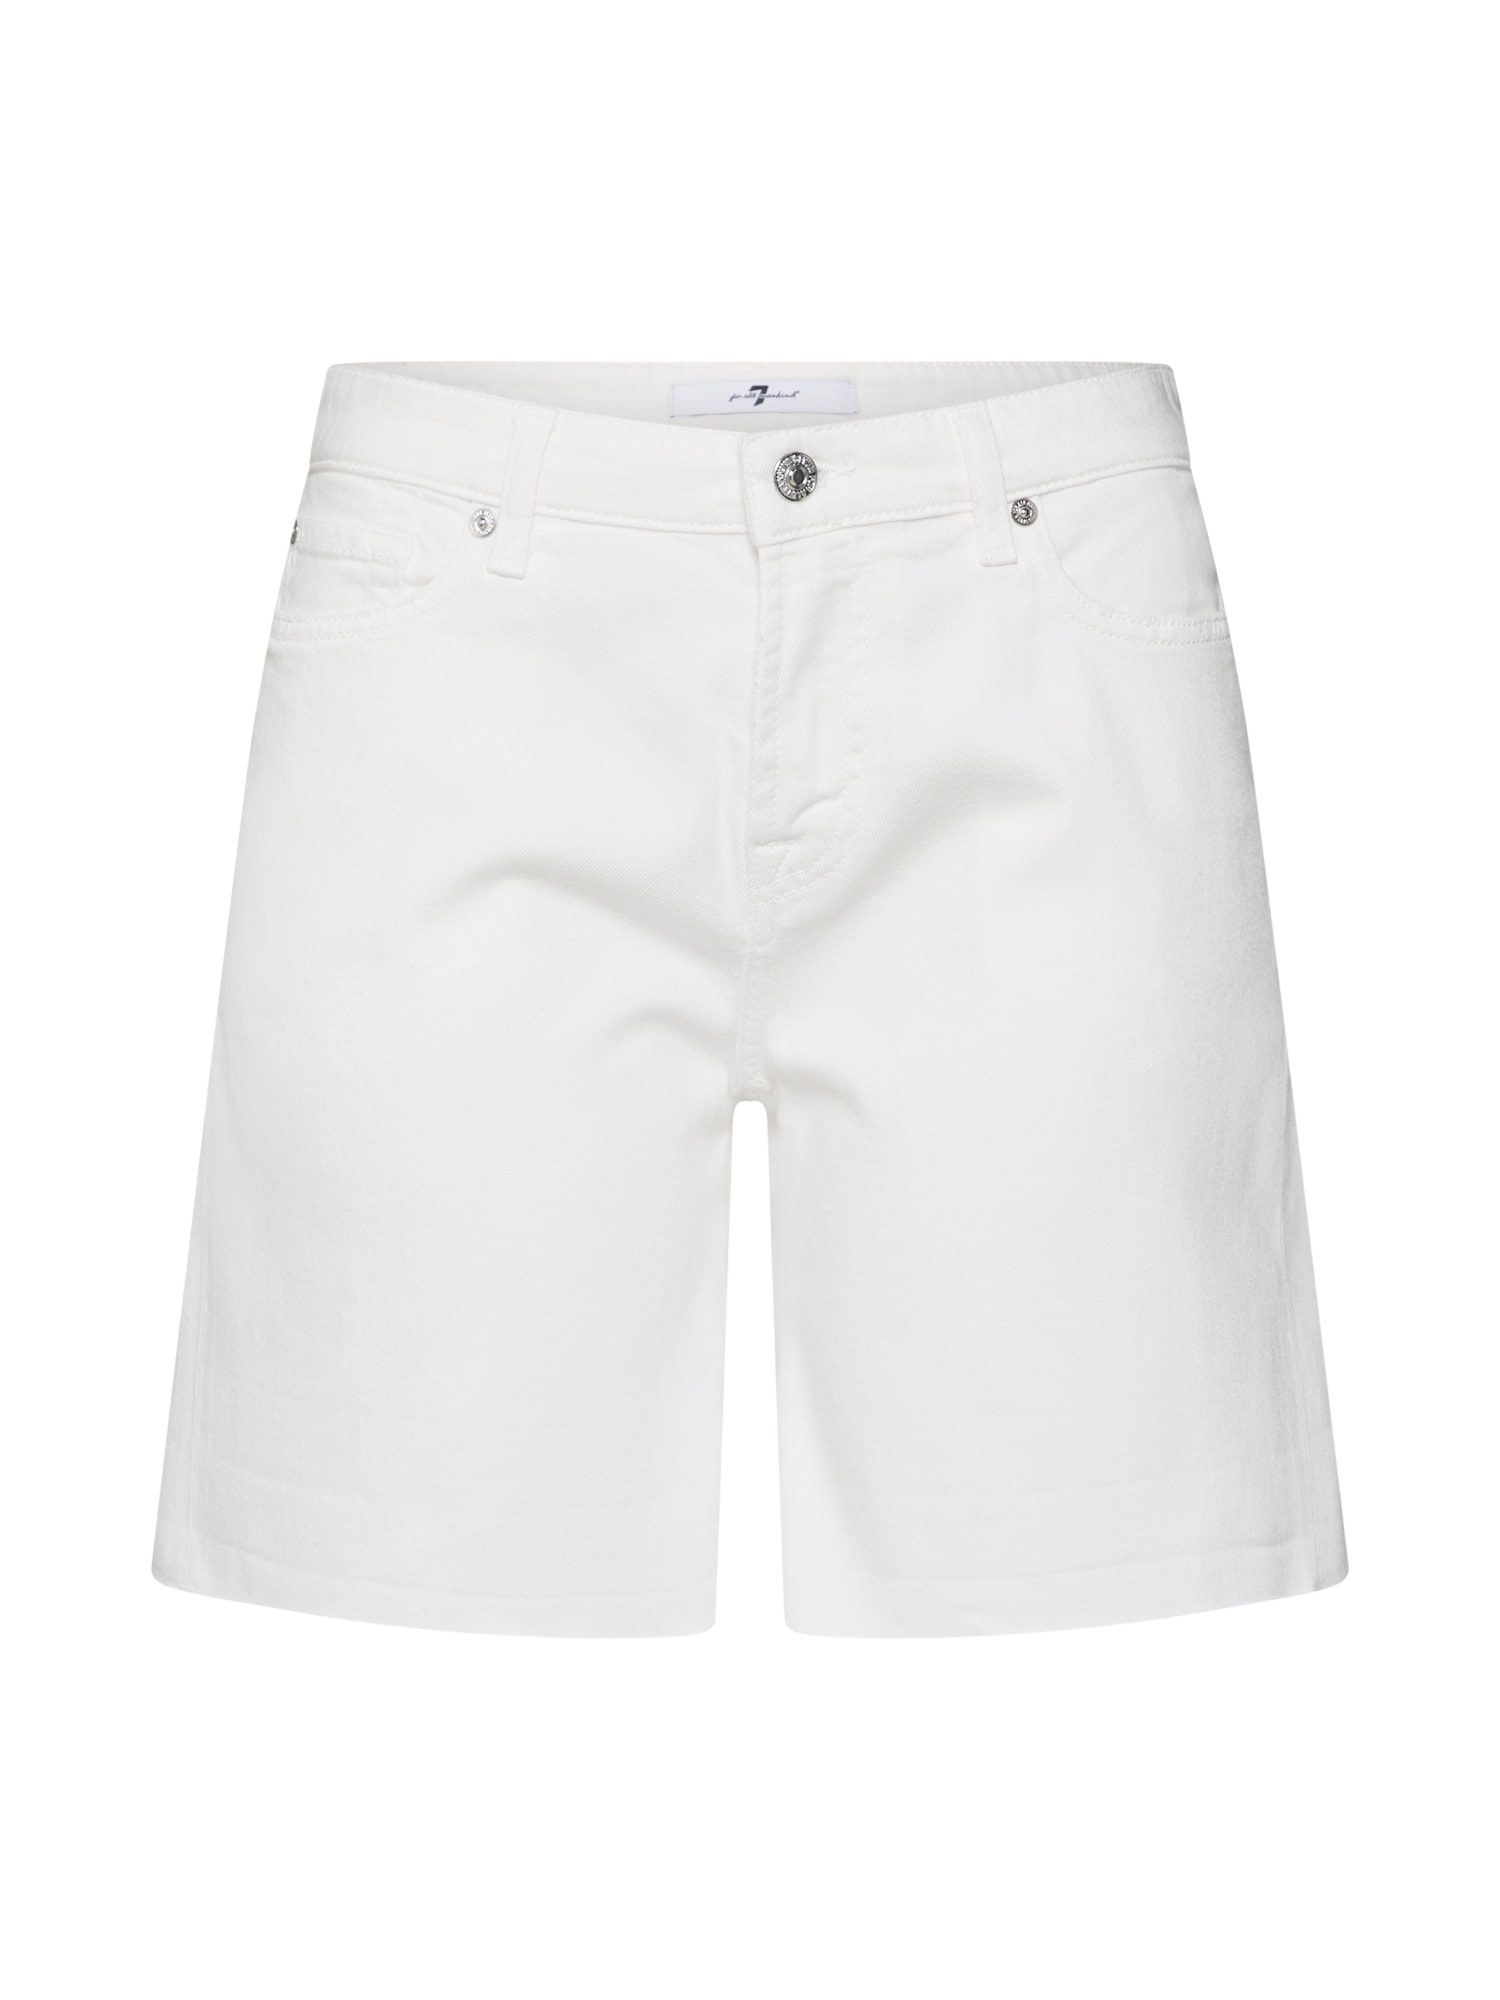 7 for all mankind - Jeans ´BOY SHORTS COLORED TWILL´